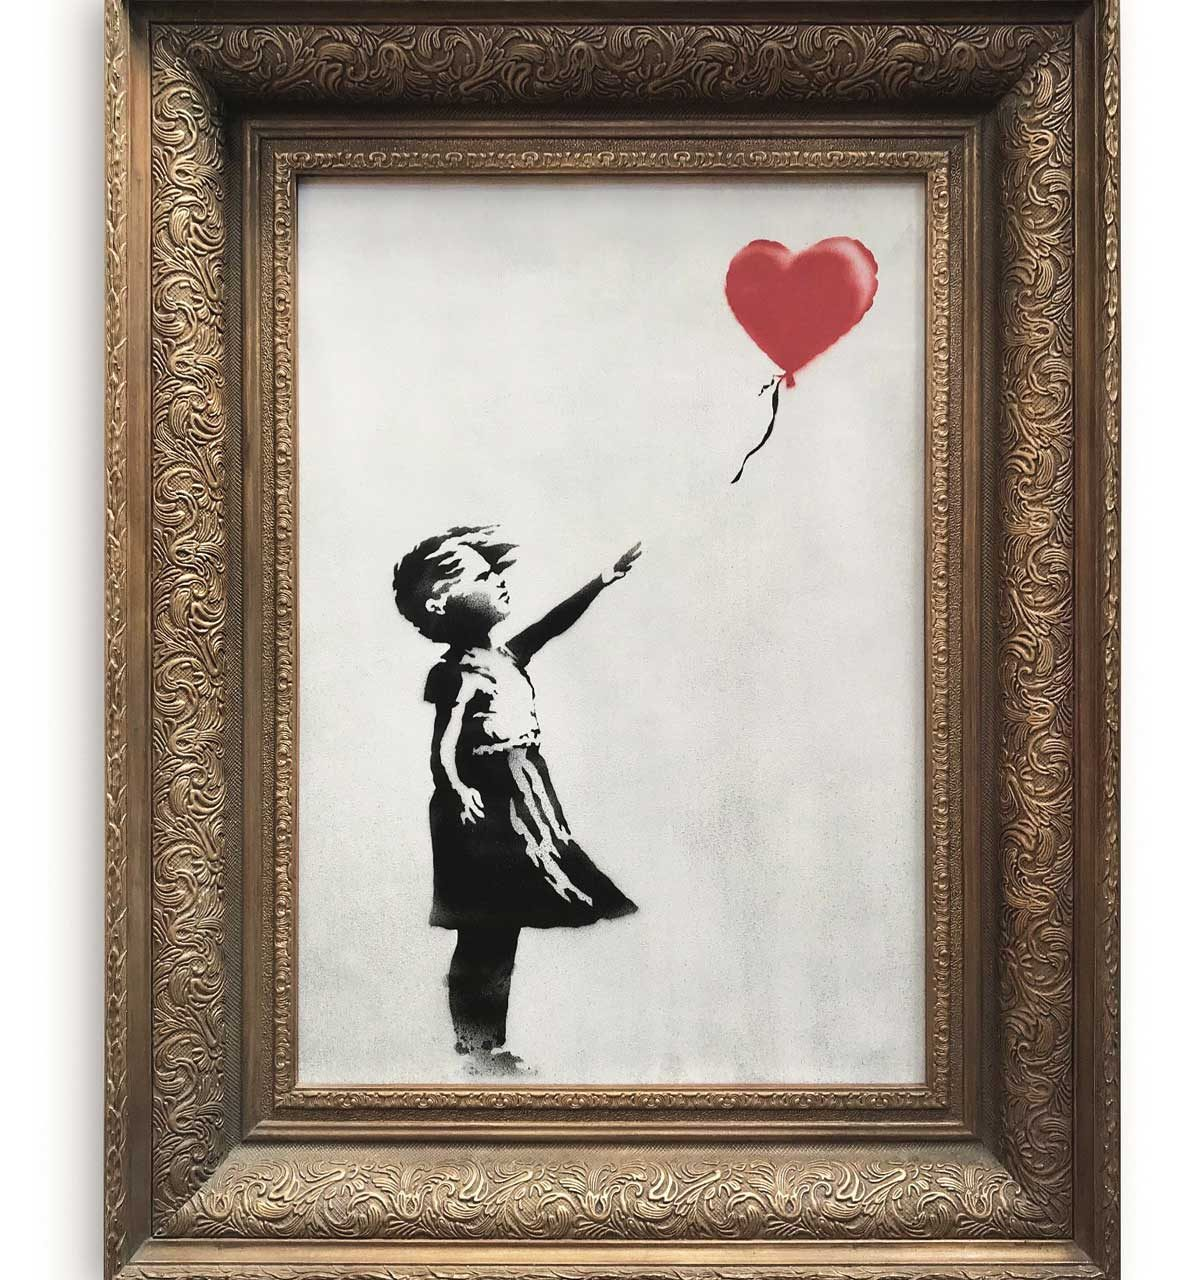 Banksy Painting Self-destructs After Selling for £1 Million